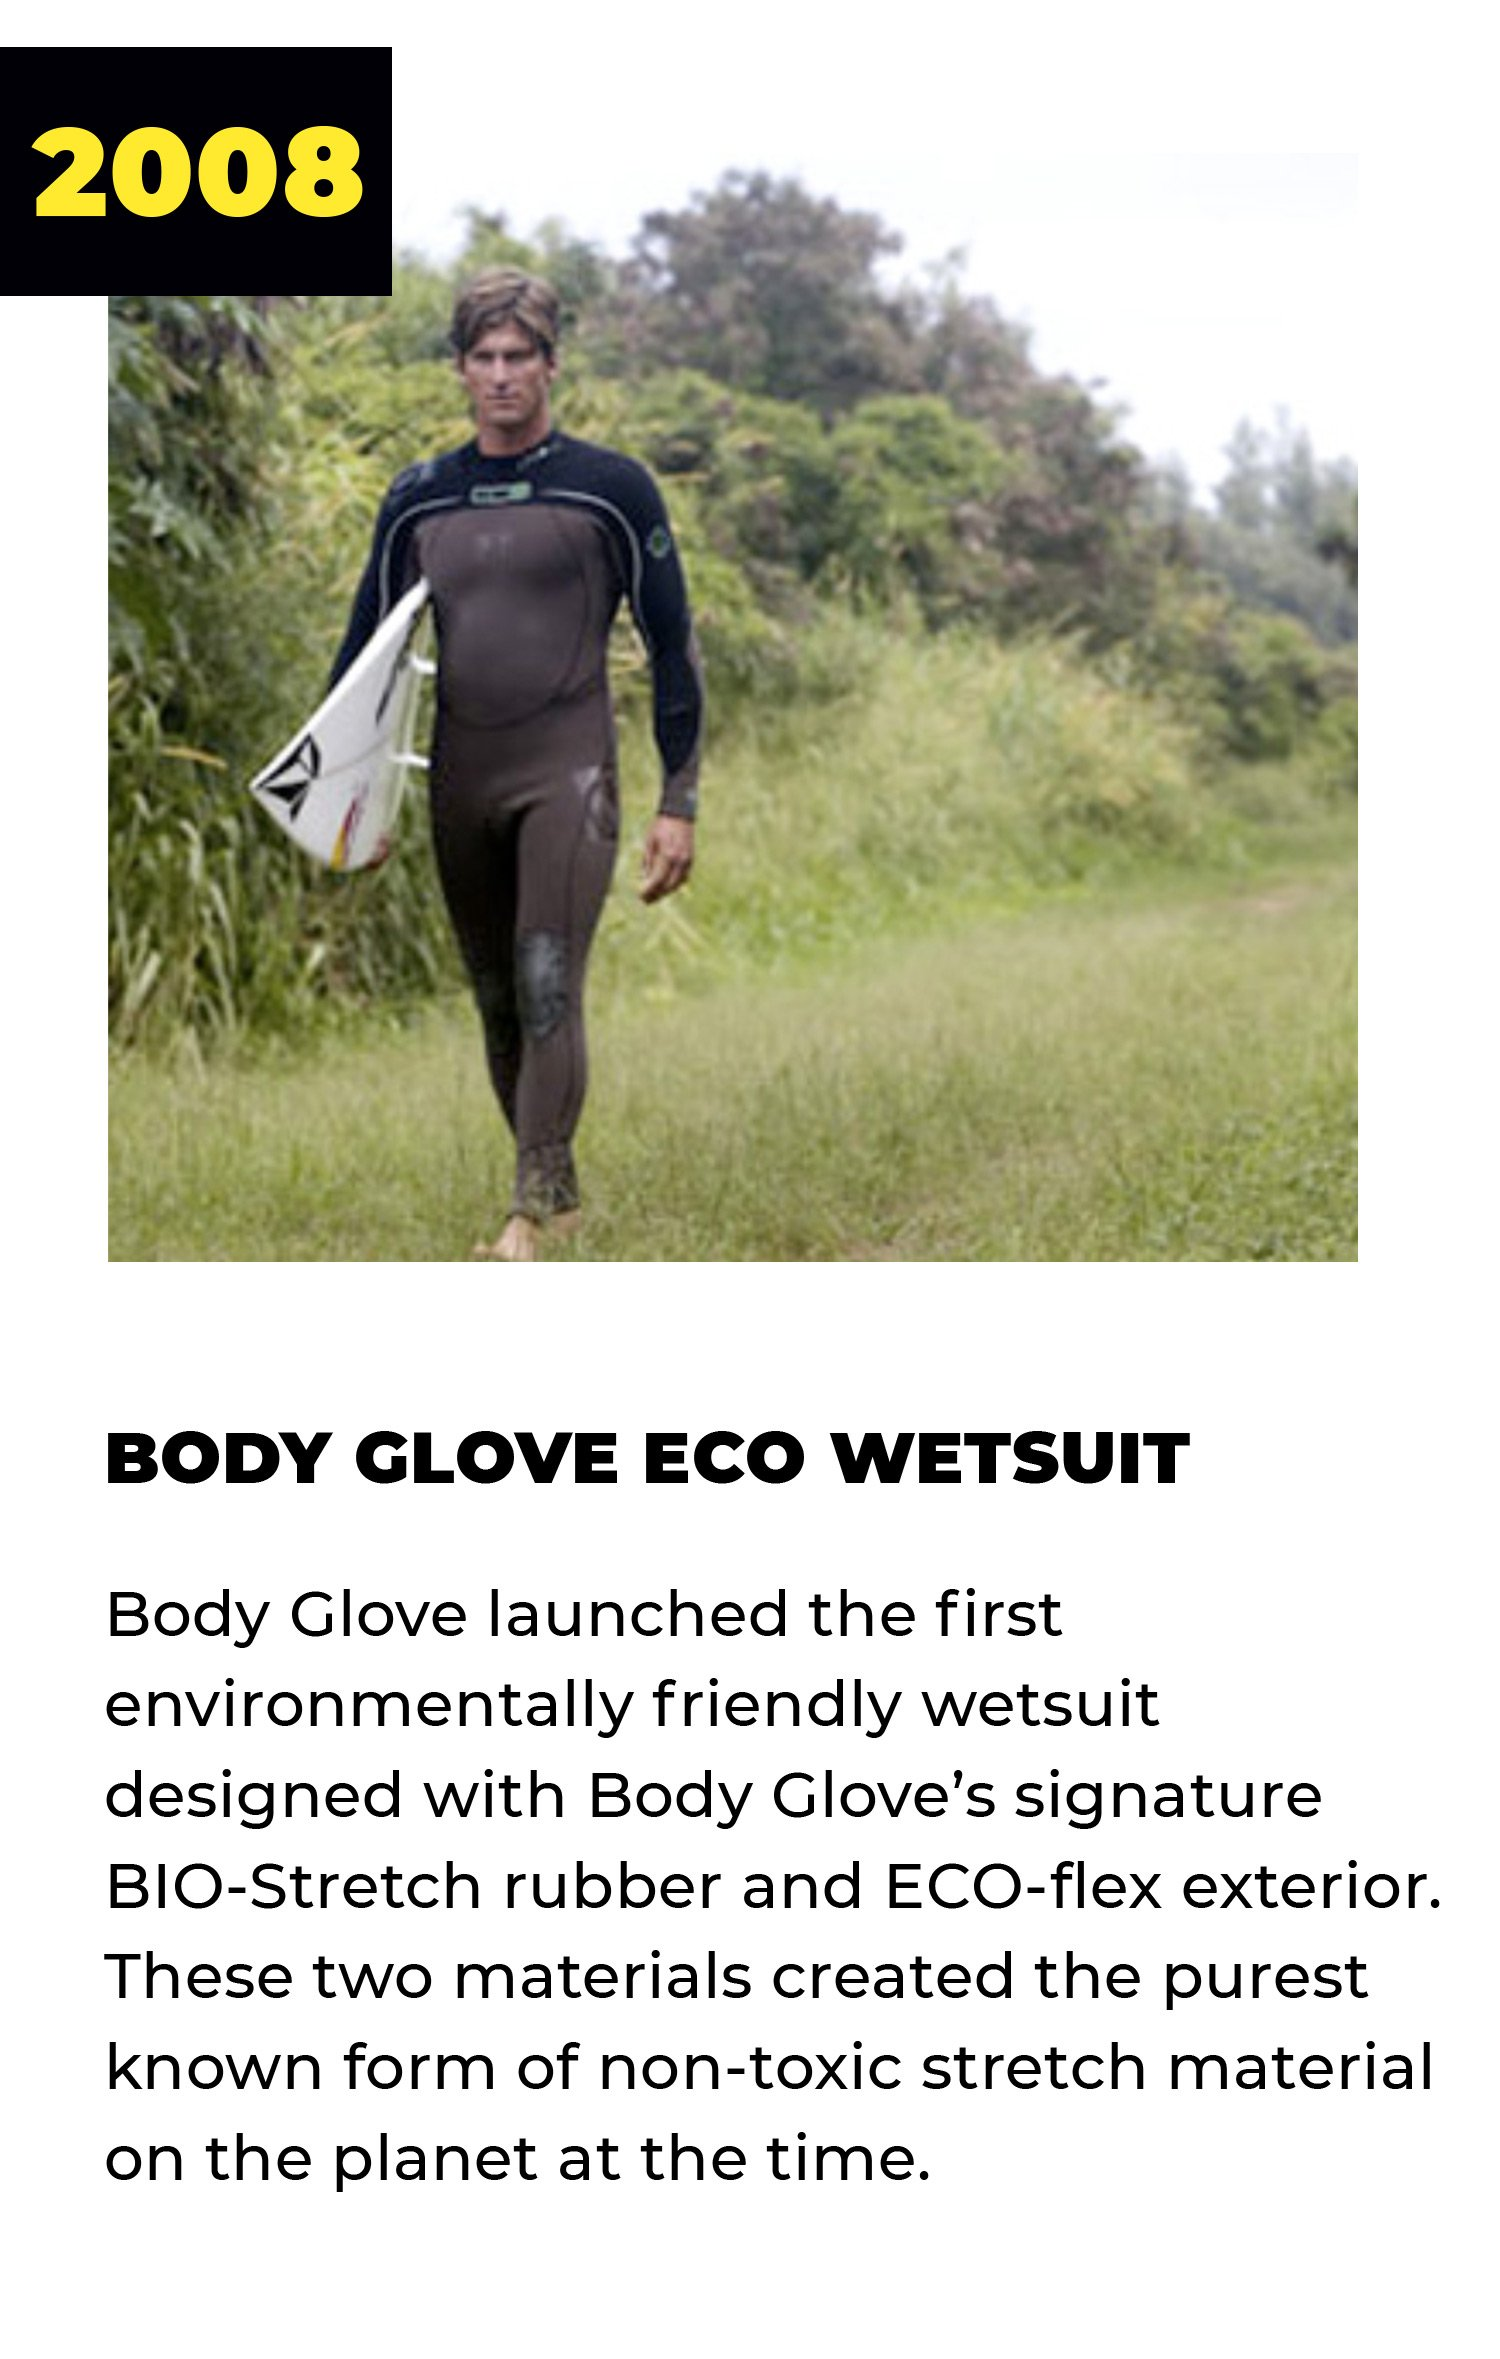 2008 | Body Glove Eco Wetsuit | Body Glove launched the first environmentally friendly wetsuit designed with Body Glove's signature BIO-Stretch rubber and ECO-flex exterior. These two materials created the purest known form of non-toxic stretch material on the planet at the time.